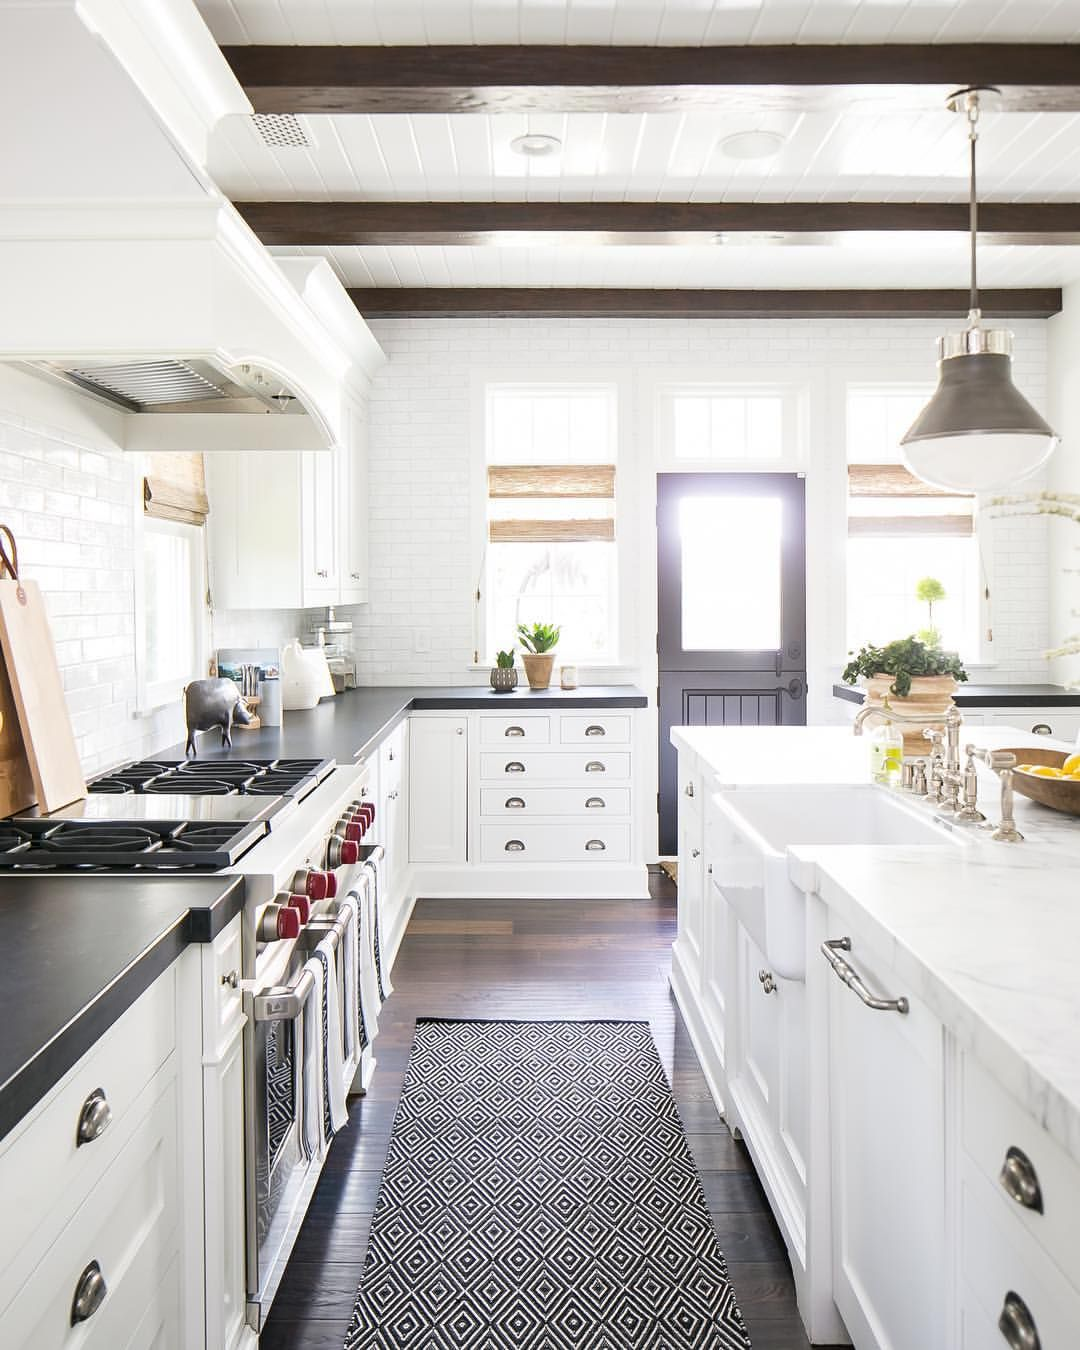 white kitchen cabinets mixed countertops kitchen design beautiful kitchen designs home decor on kitchen remodel not white id=79446